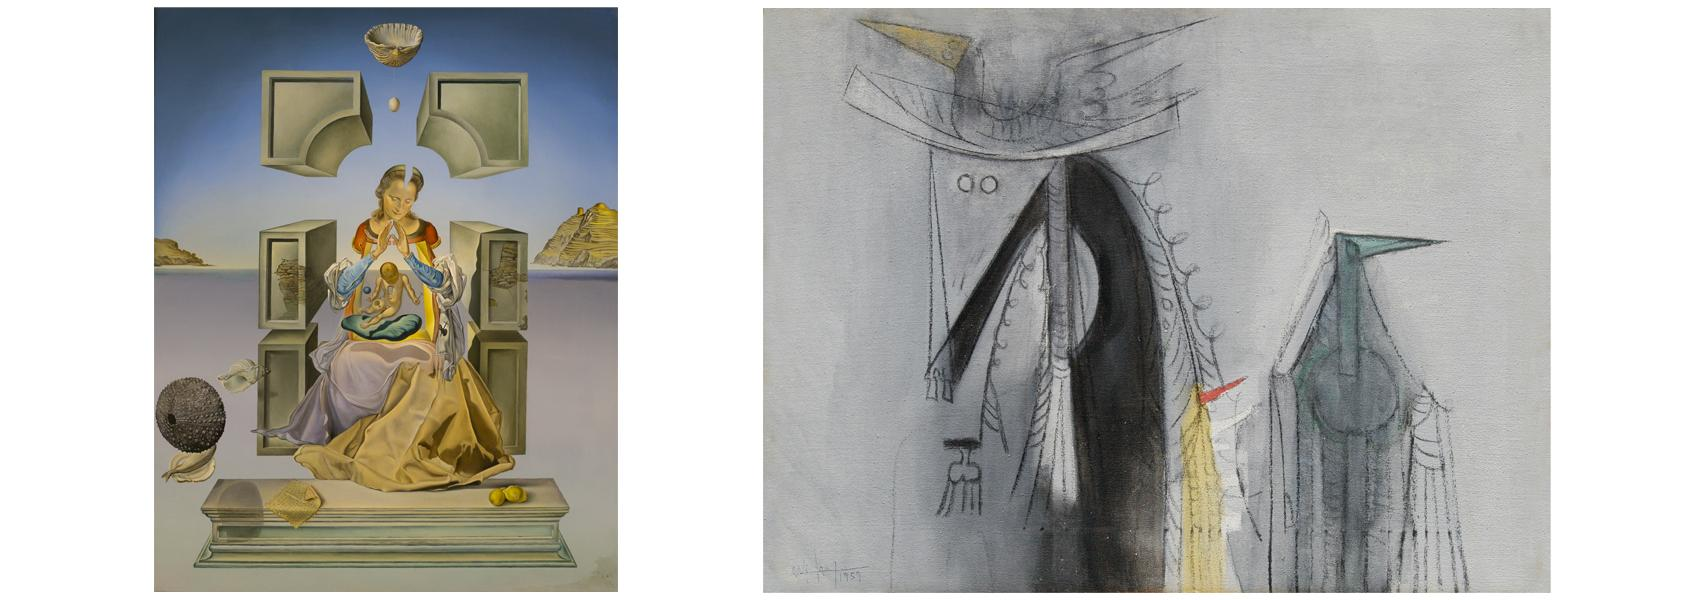 Artwork by Salvadori Dali and Wifredo Lam from the Haggerty's collection